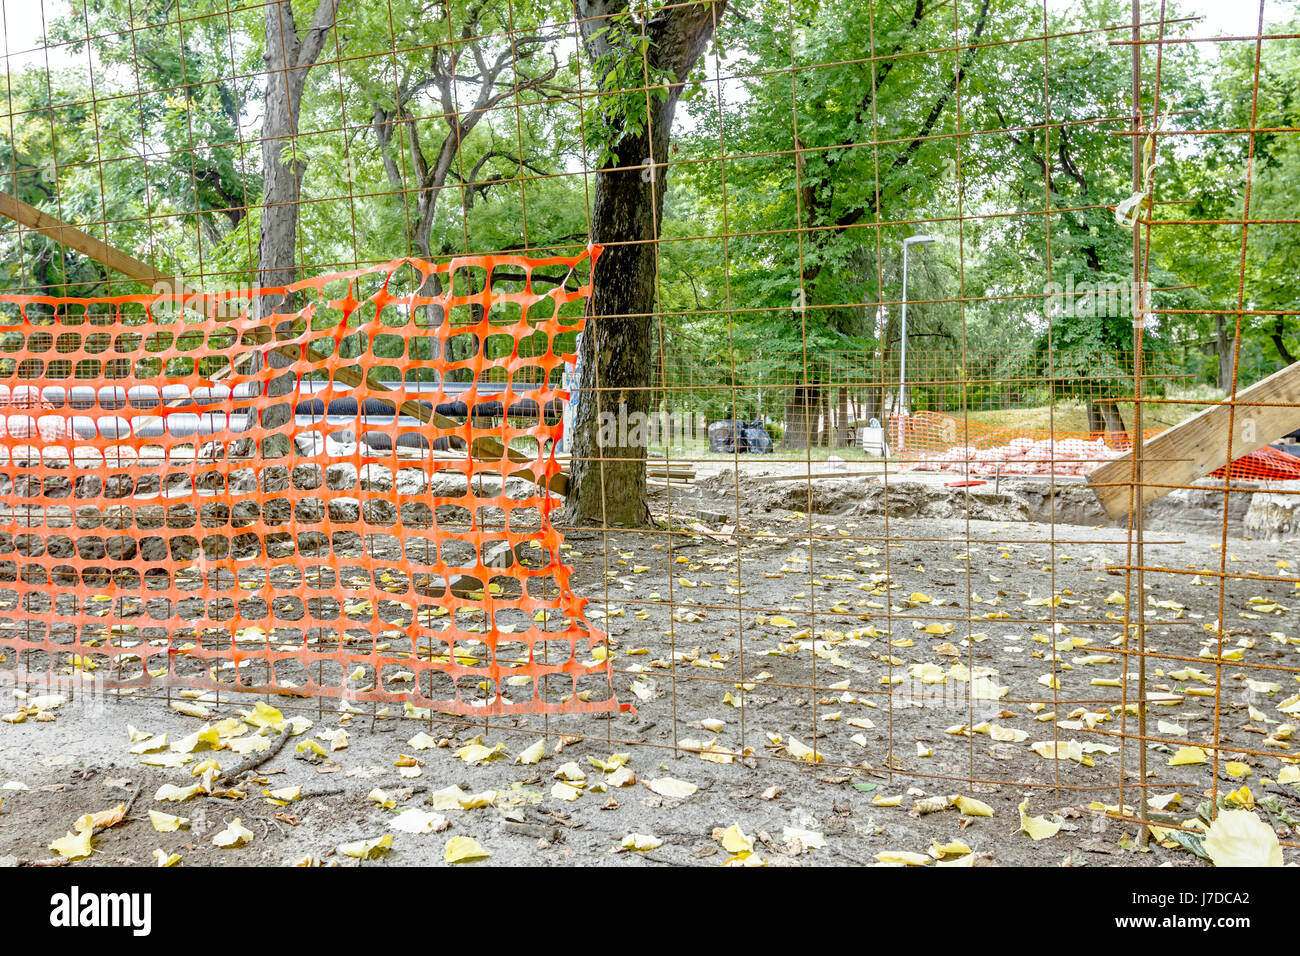 Confined space with orange, plastic, safety net is placed around the building site in deciduous park. - Stock Image